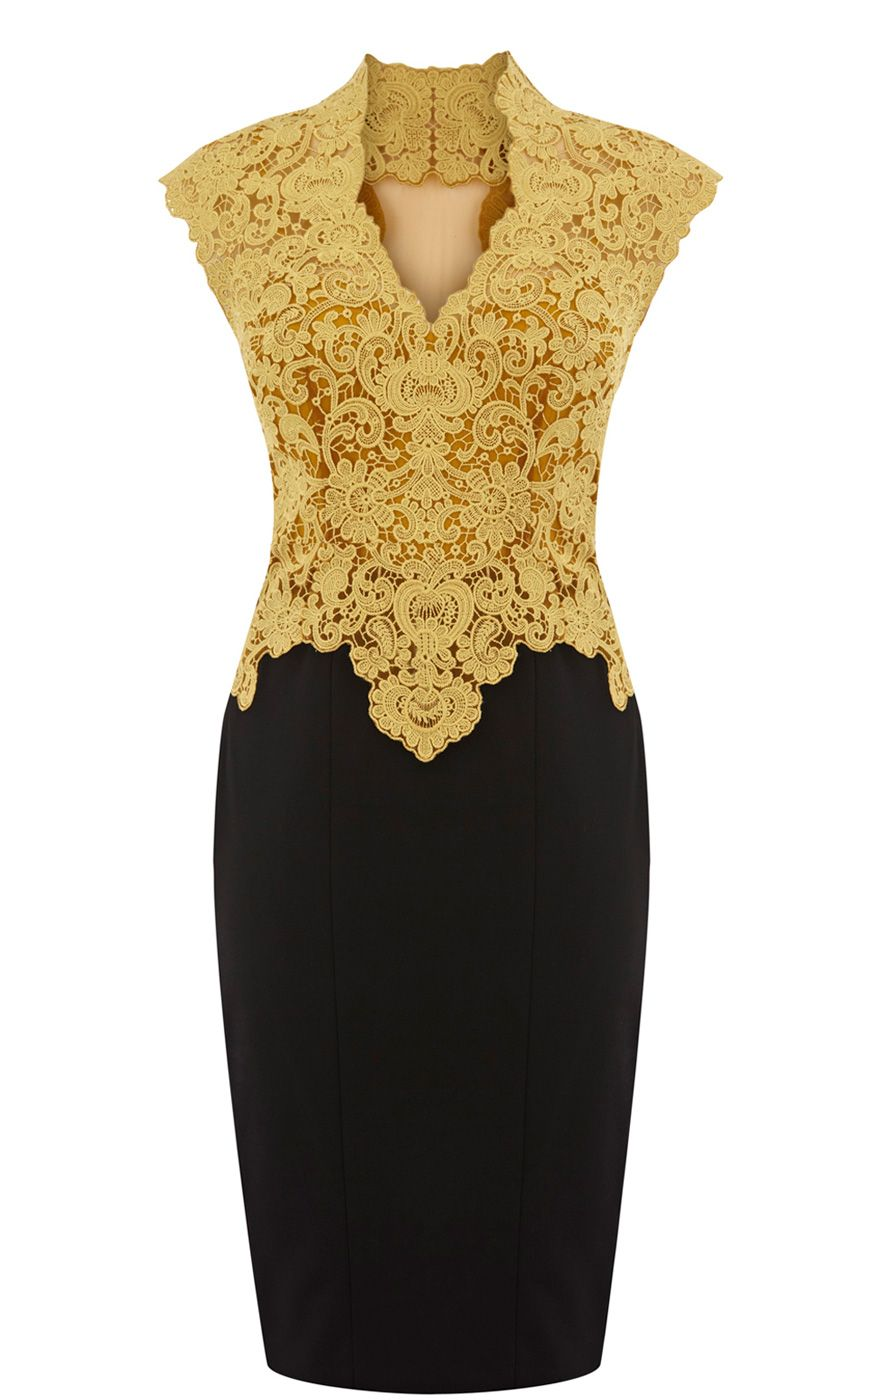 Black dress gold lace - Karen Millen Beautiful Cotton Lace Pencil Dress Yellow_black Karen Millen 91 60